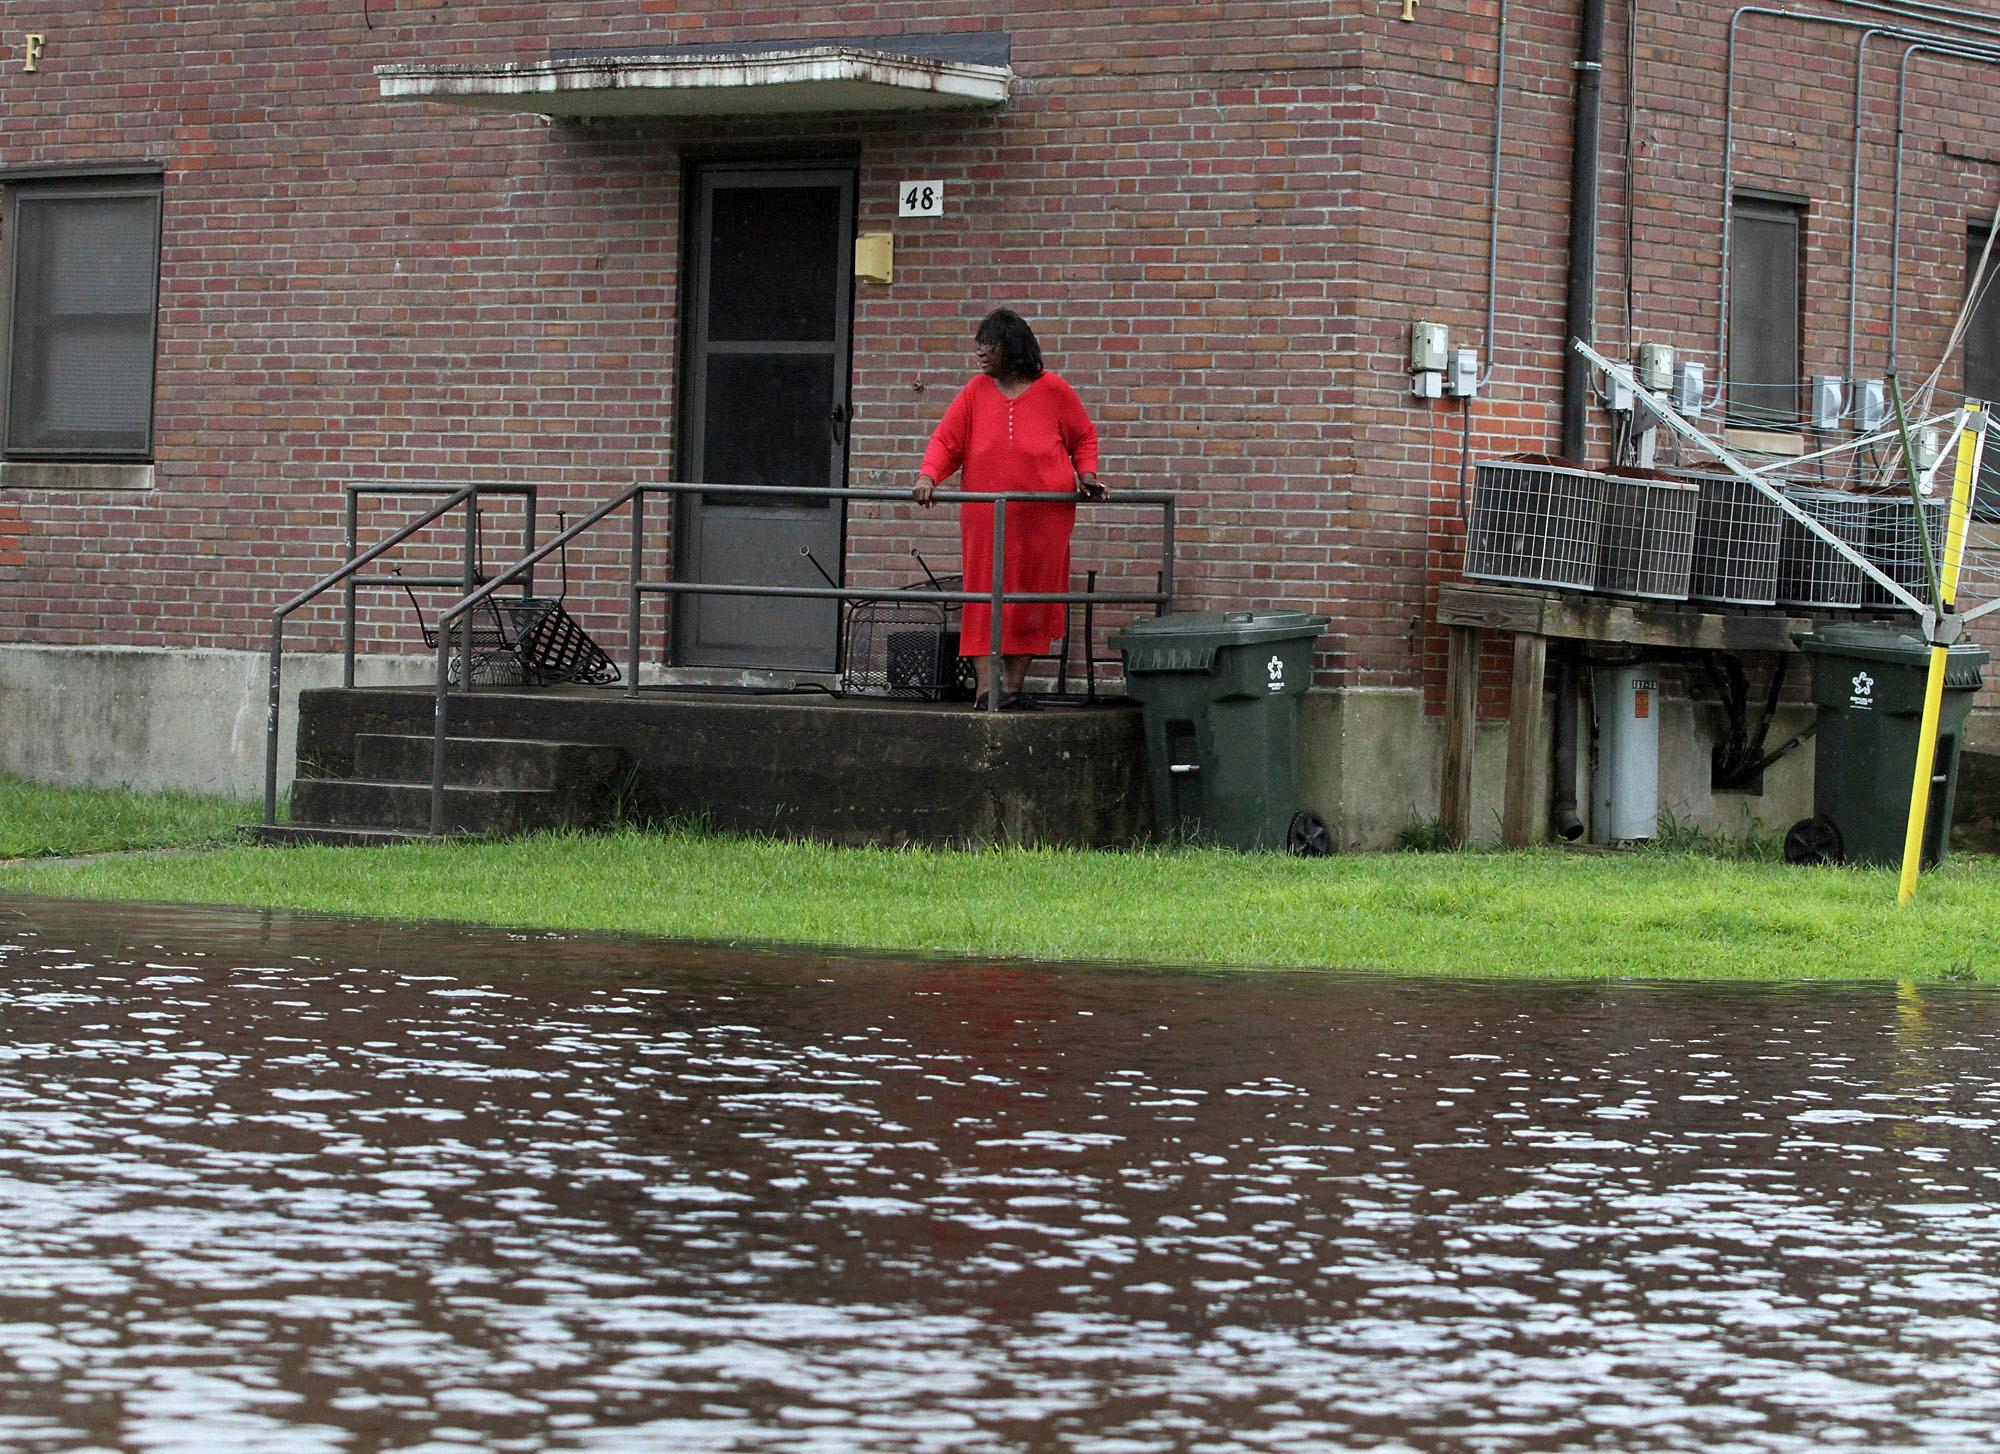 Residents at Trent Court Apartments wait out the weather as rising water gets closer to their doors in New Bern, N.C. Thursday, Sept. 13, 2018. Hurricane Florence already has inundated coastal streets with ocean water and left tens of thousands without power, and more is to come.  (Gray Whitley/Sun Journal via AP)